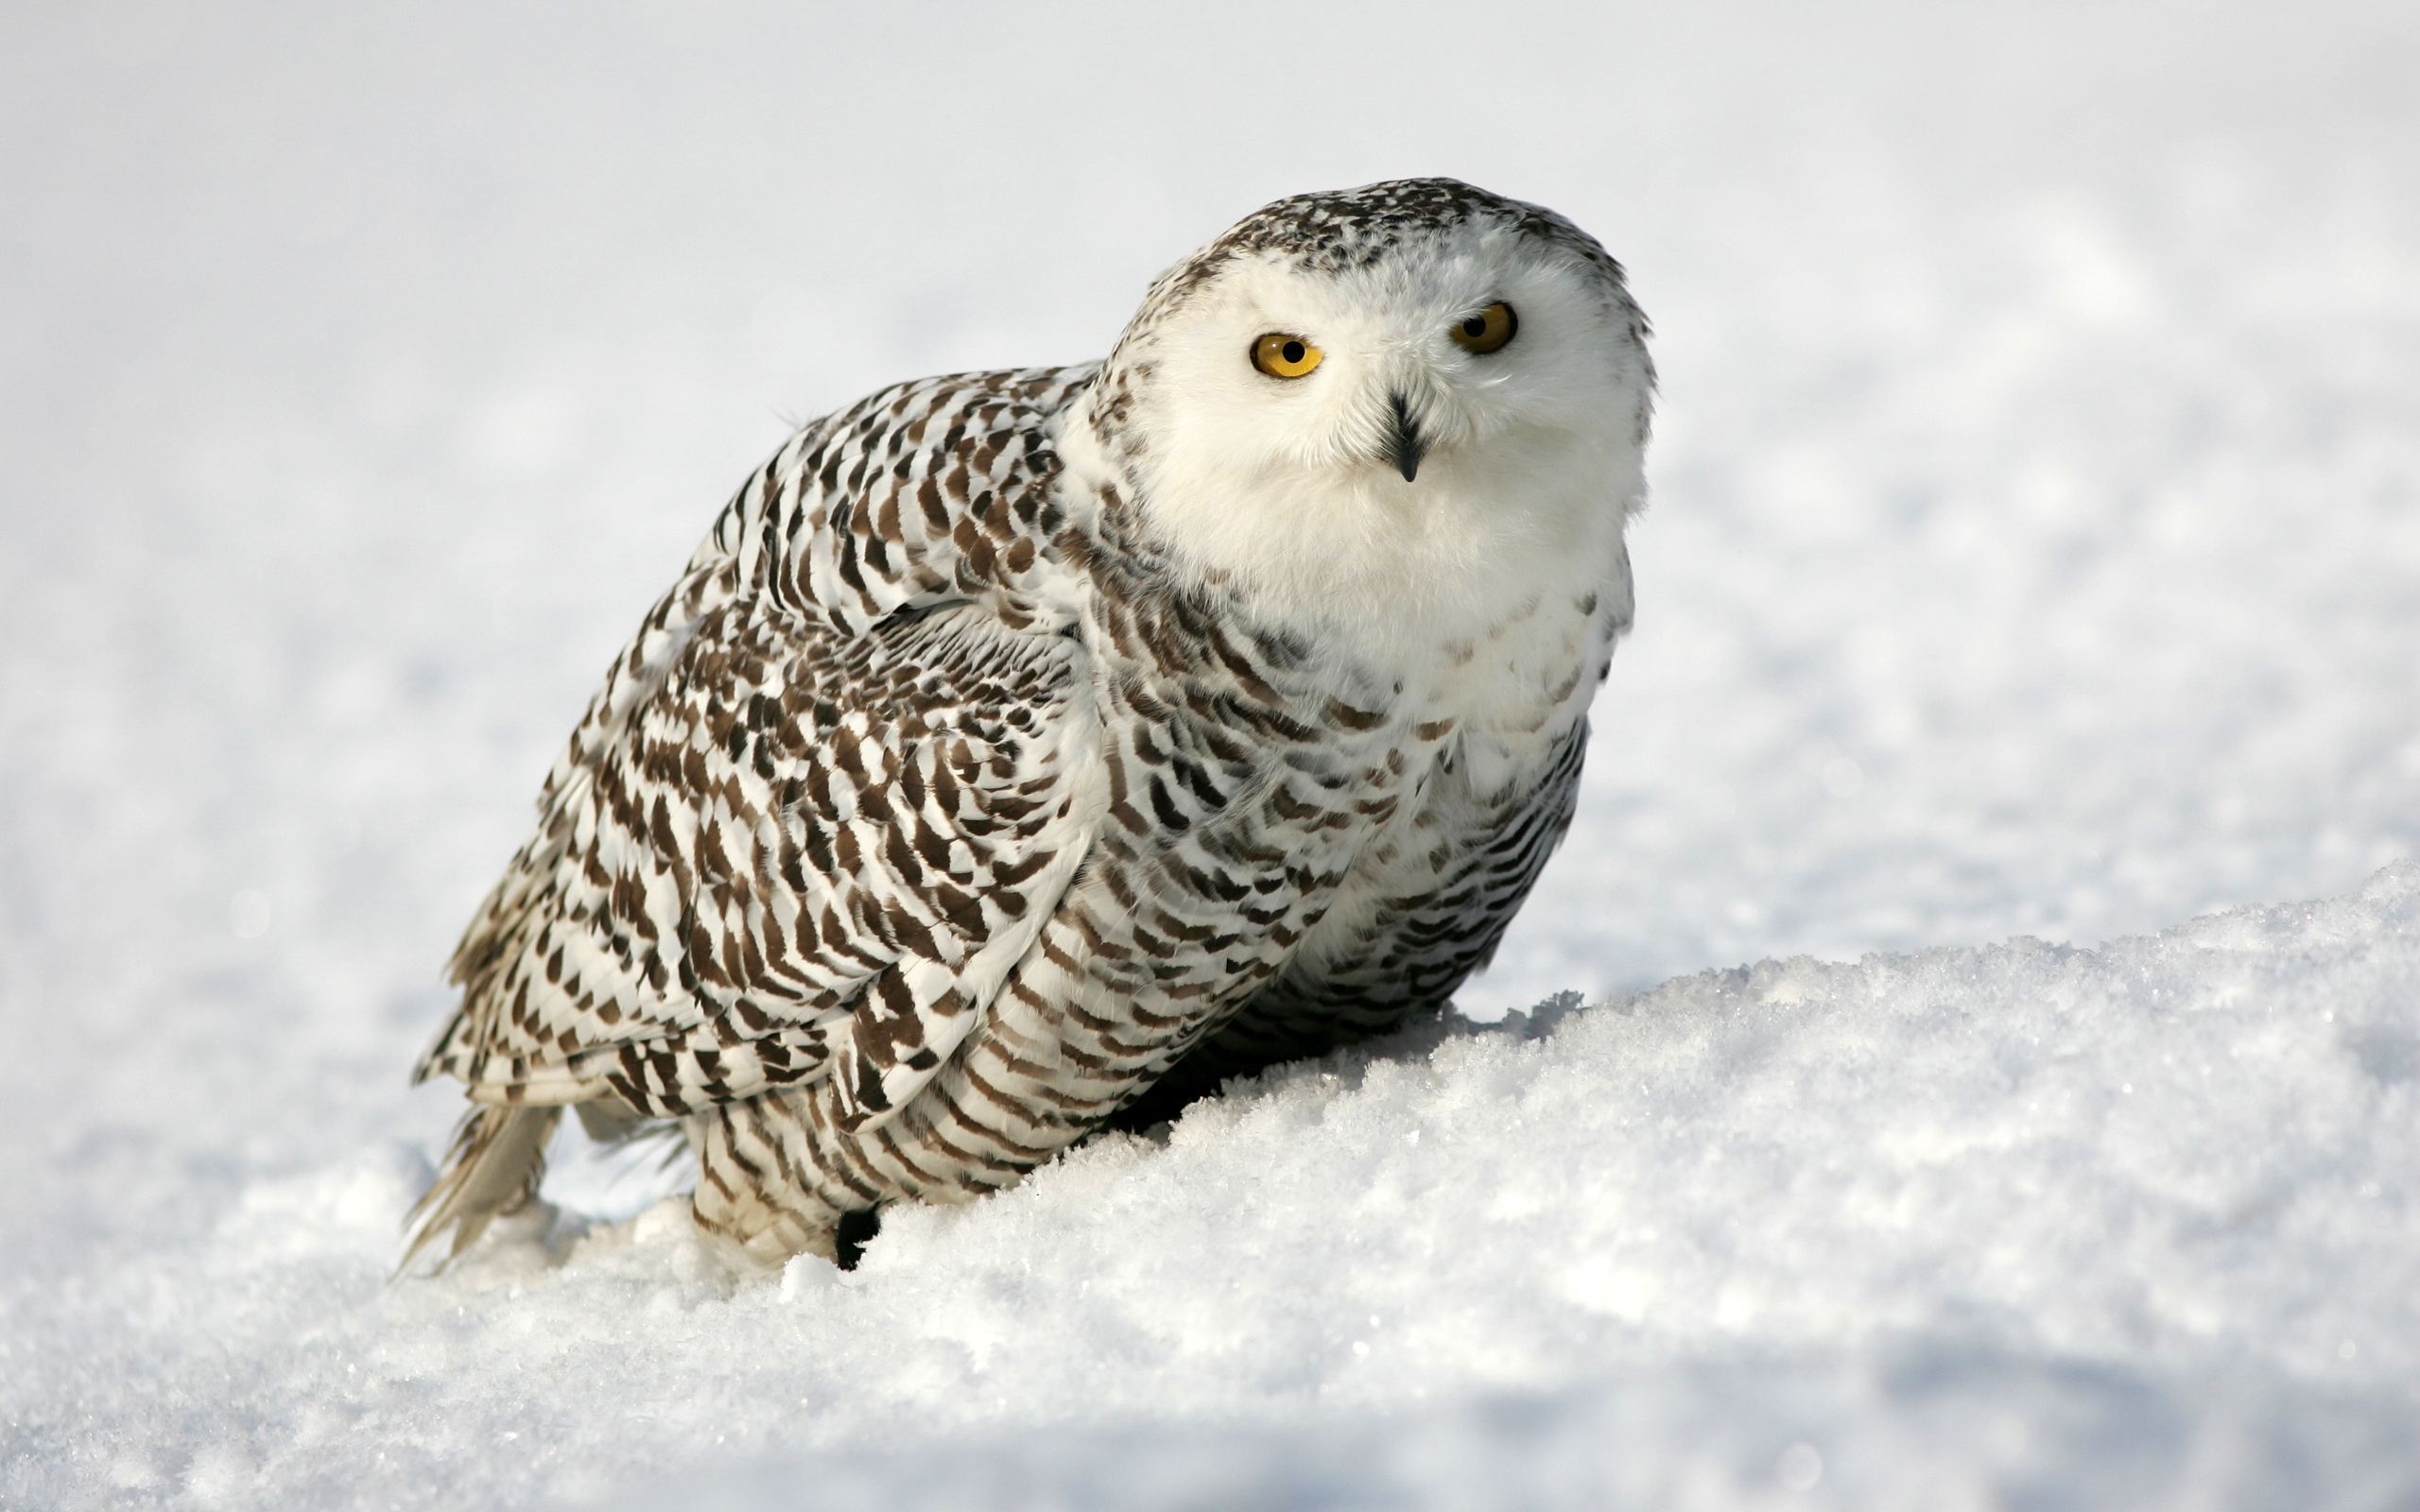 Snowy owl beautiful hd beautiful pictures all hd wallpapers snowy owl beautiful hd beautiful pictures snowy owl 1 voltagebd Choice Image